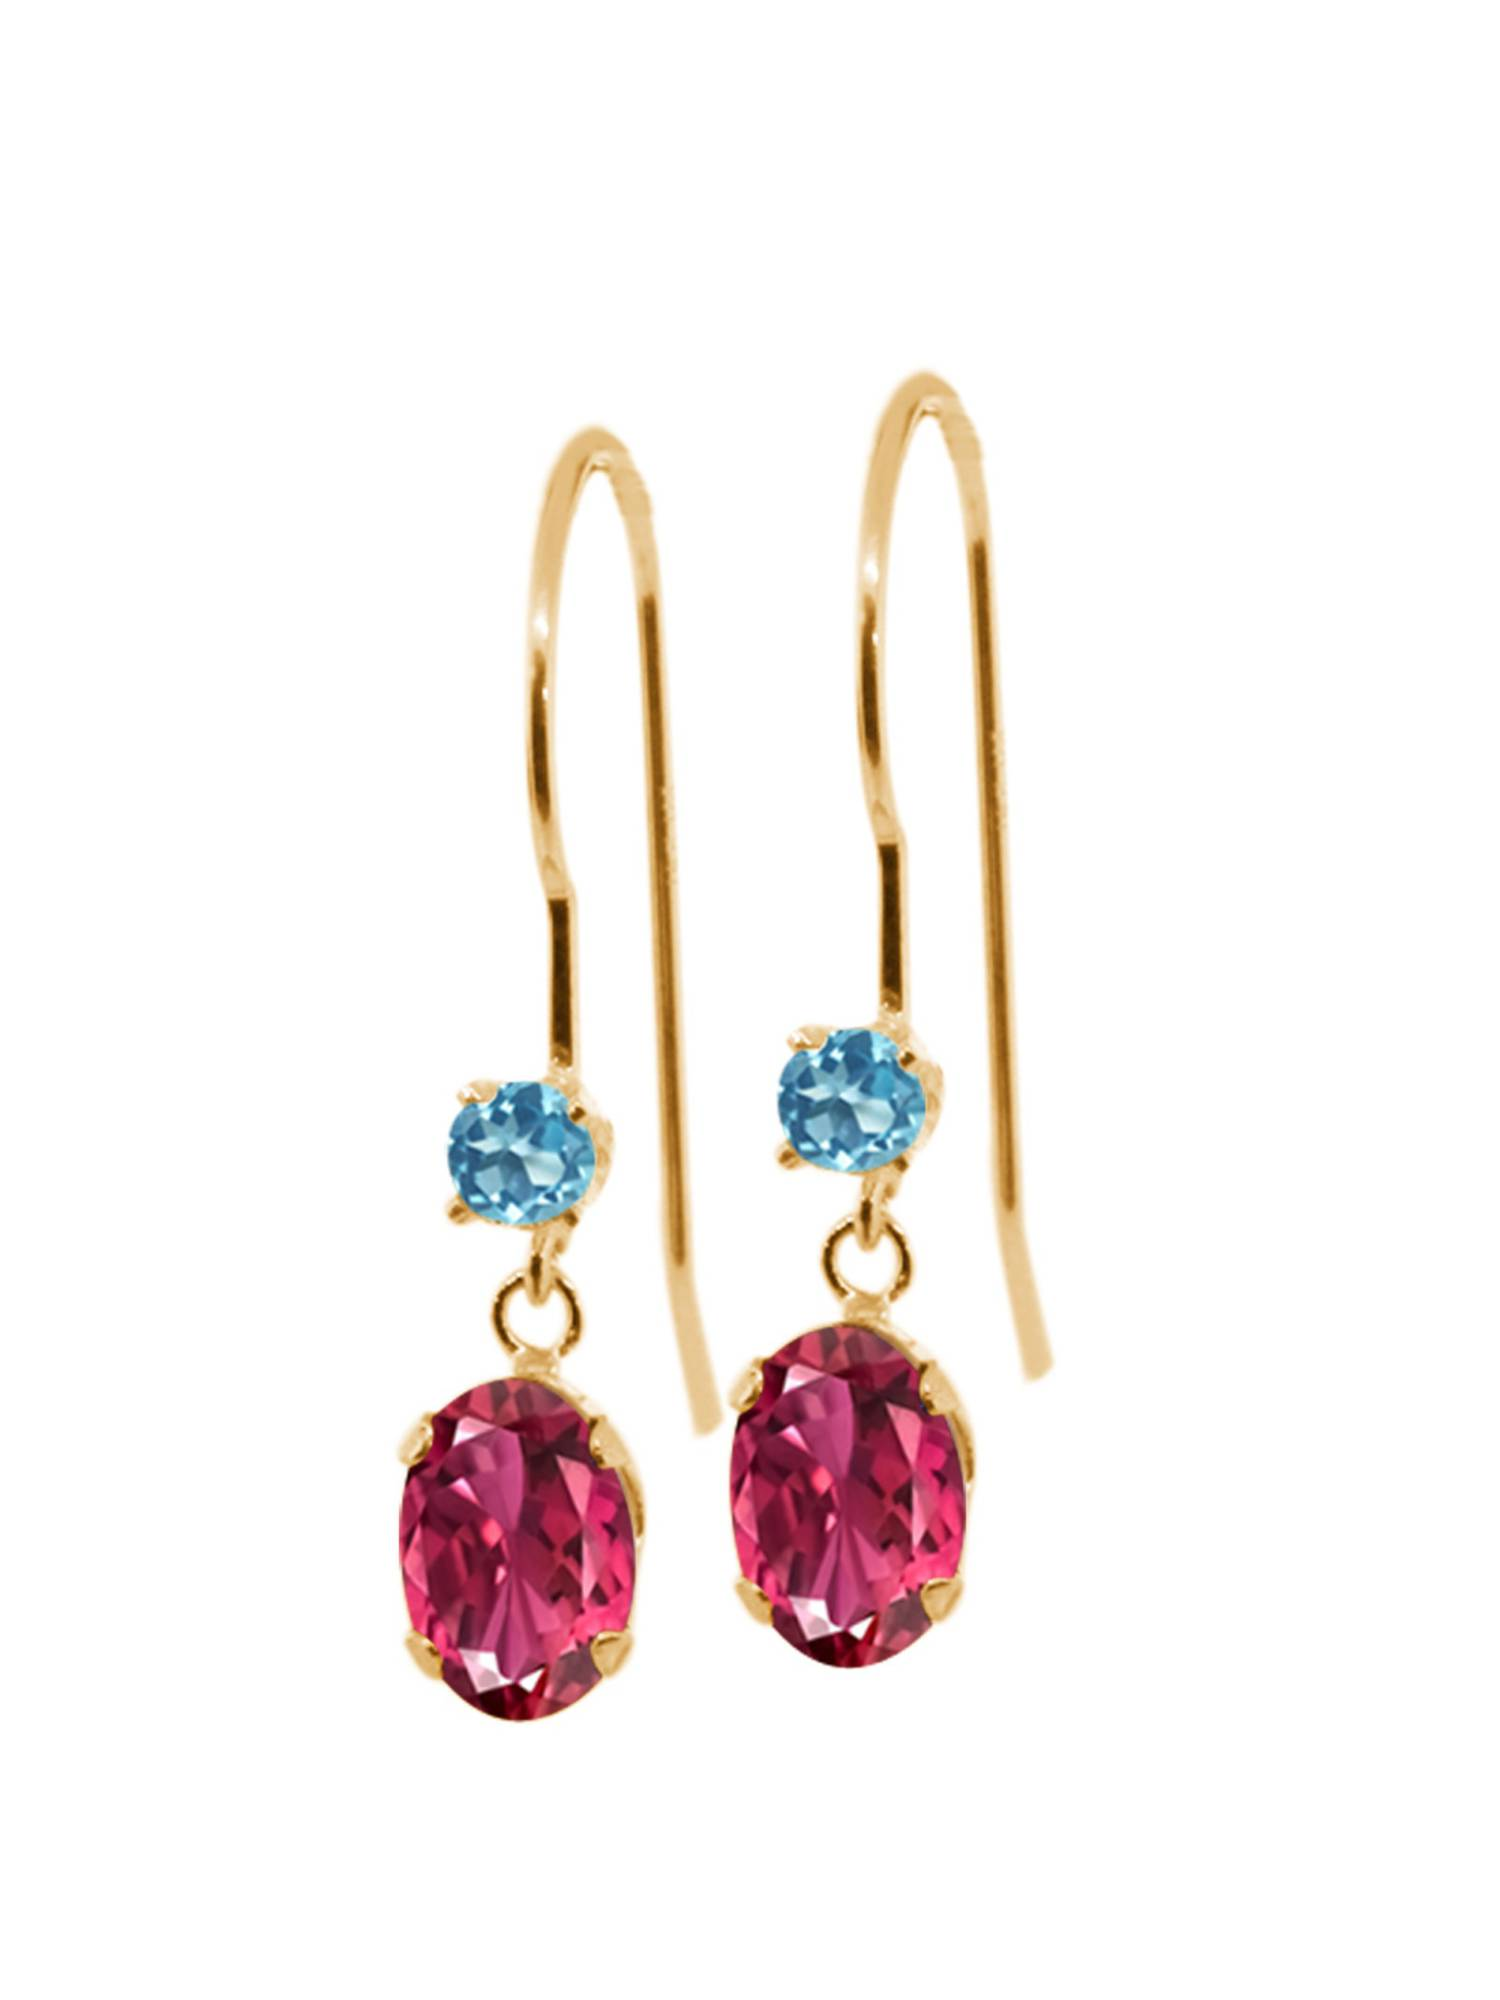 1.16 Ct Oval Pink Tourmaline Swiss Blue Simulated Topaz 14K Yellow Gold Earrings by